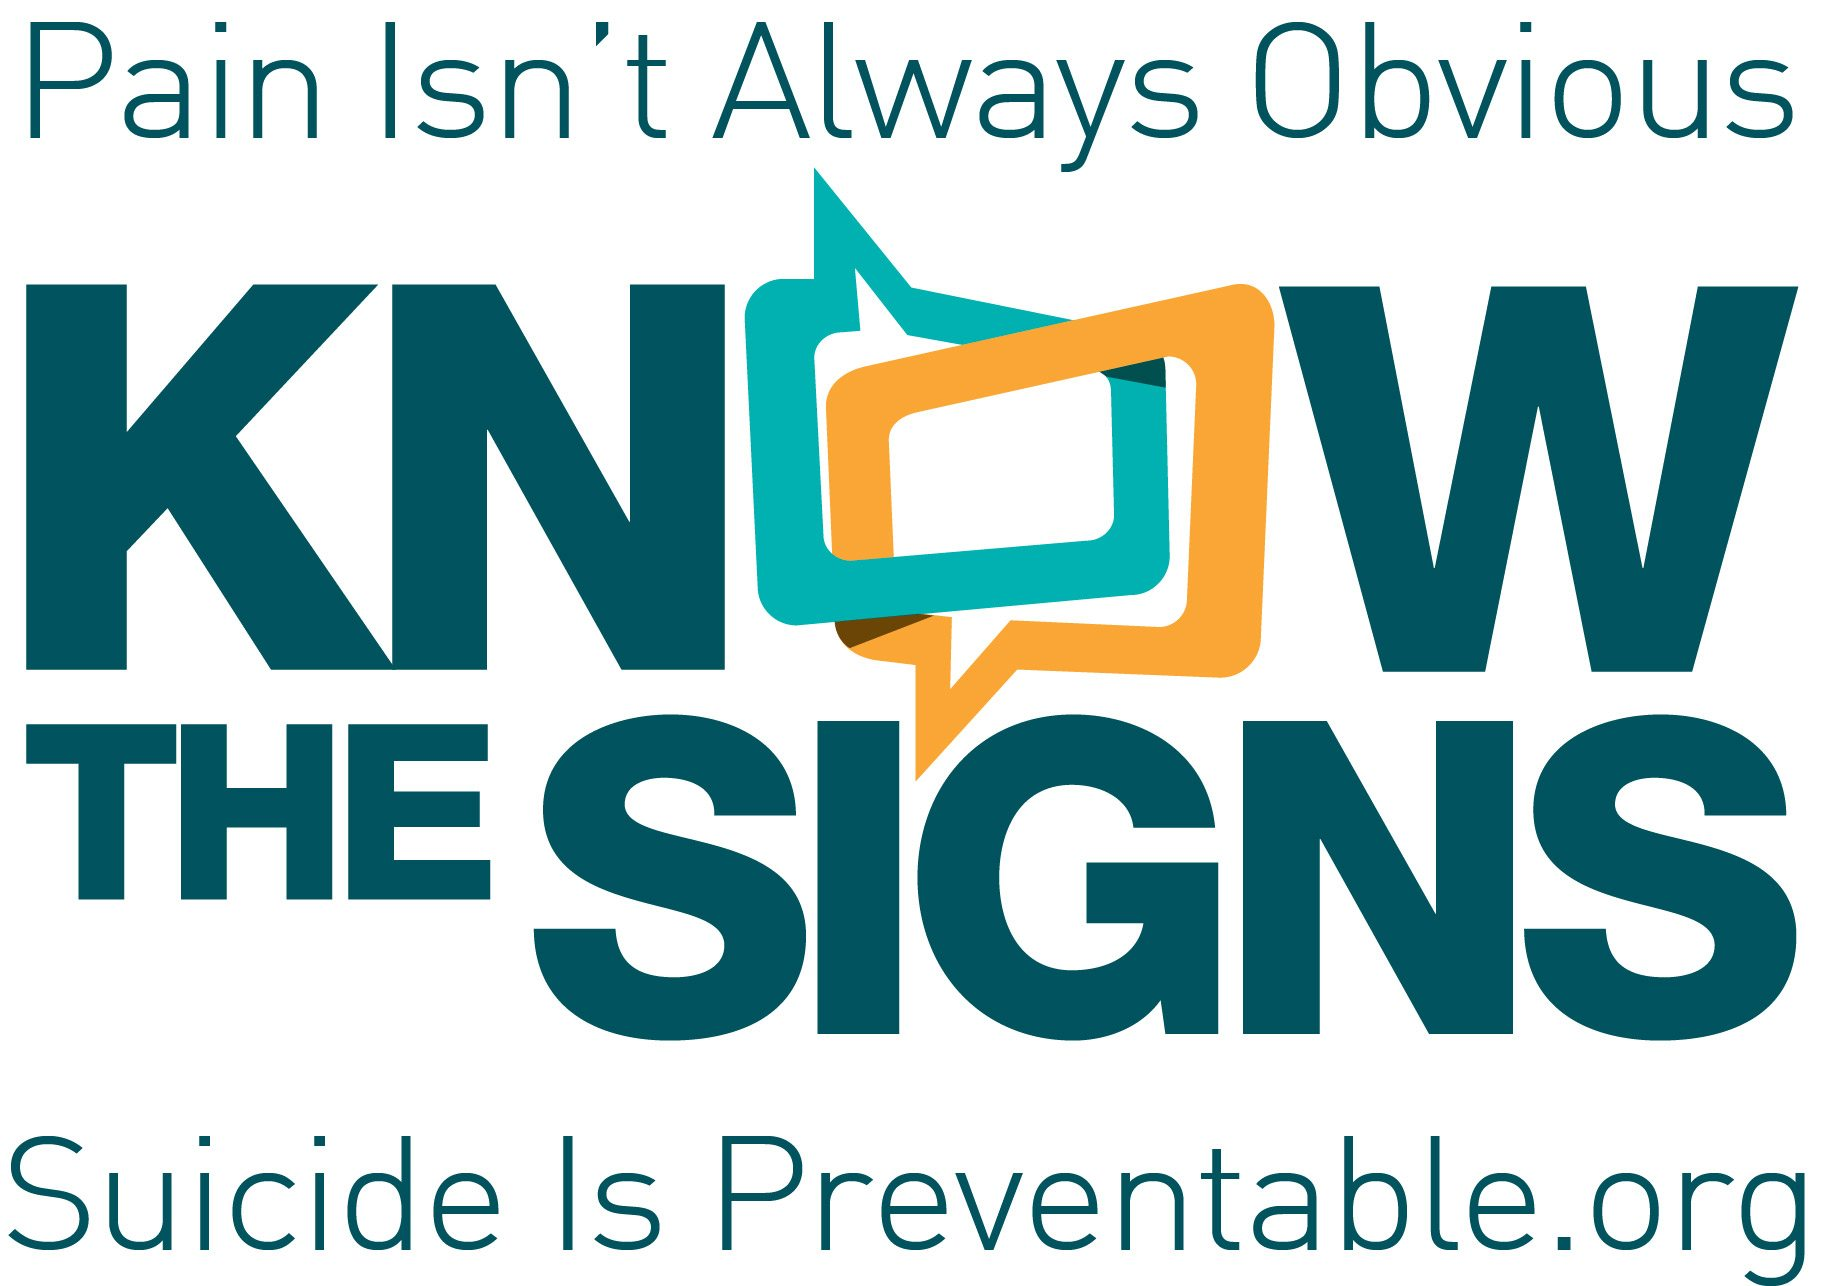 Signs of Suicide Logo